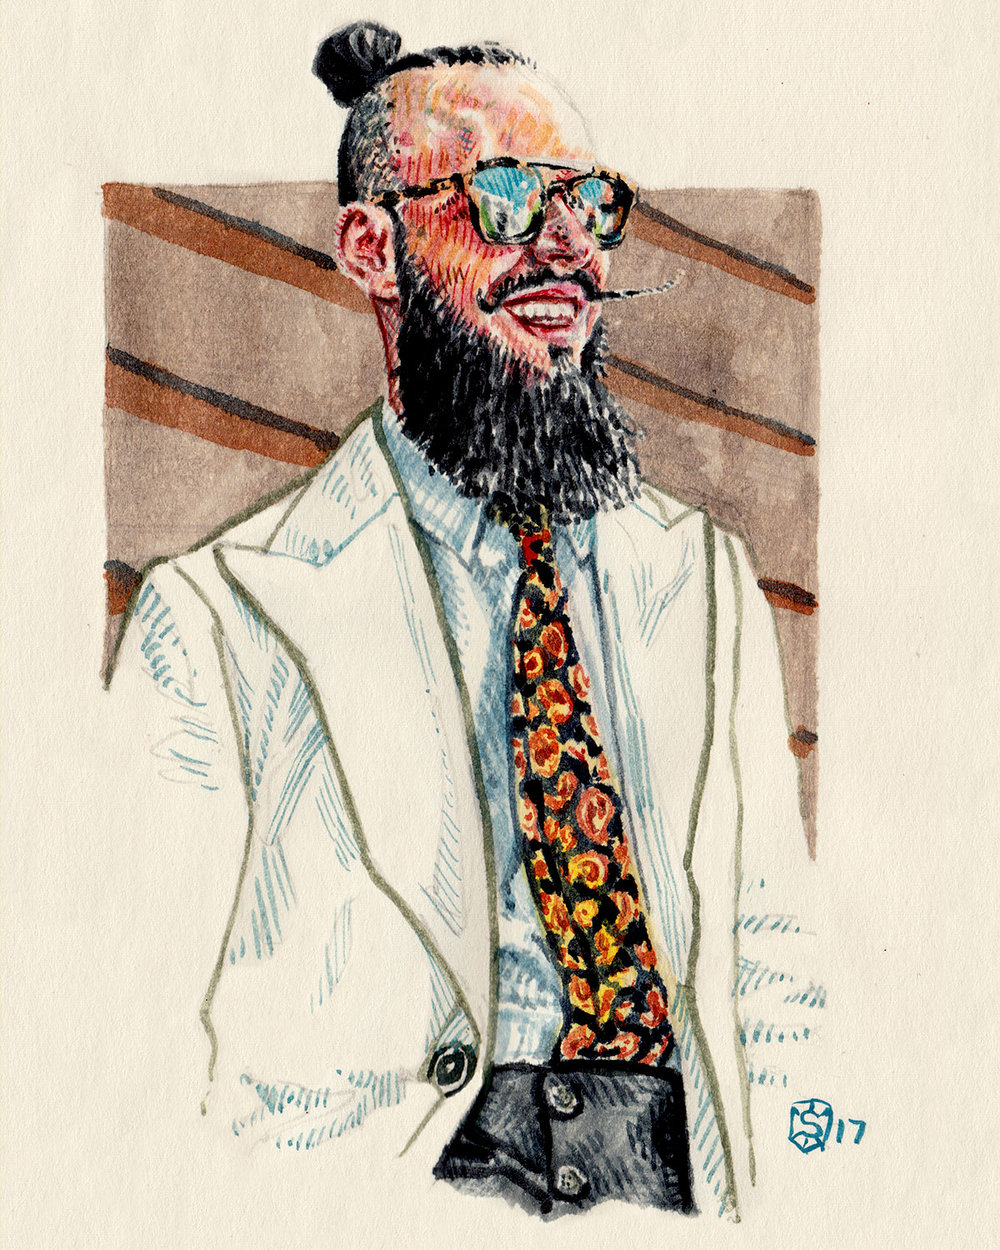 Men's Fashion illustration portrait of Artur Santos, one of the Portuguese Dandies